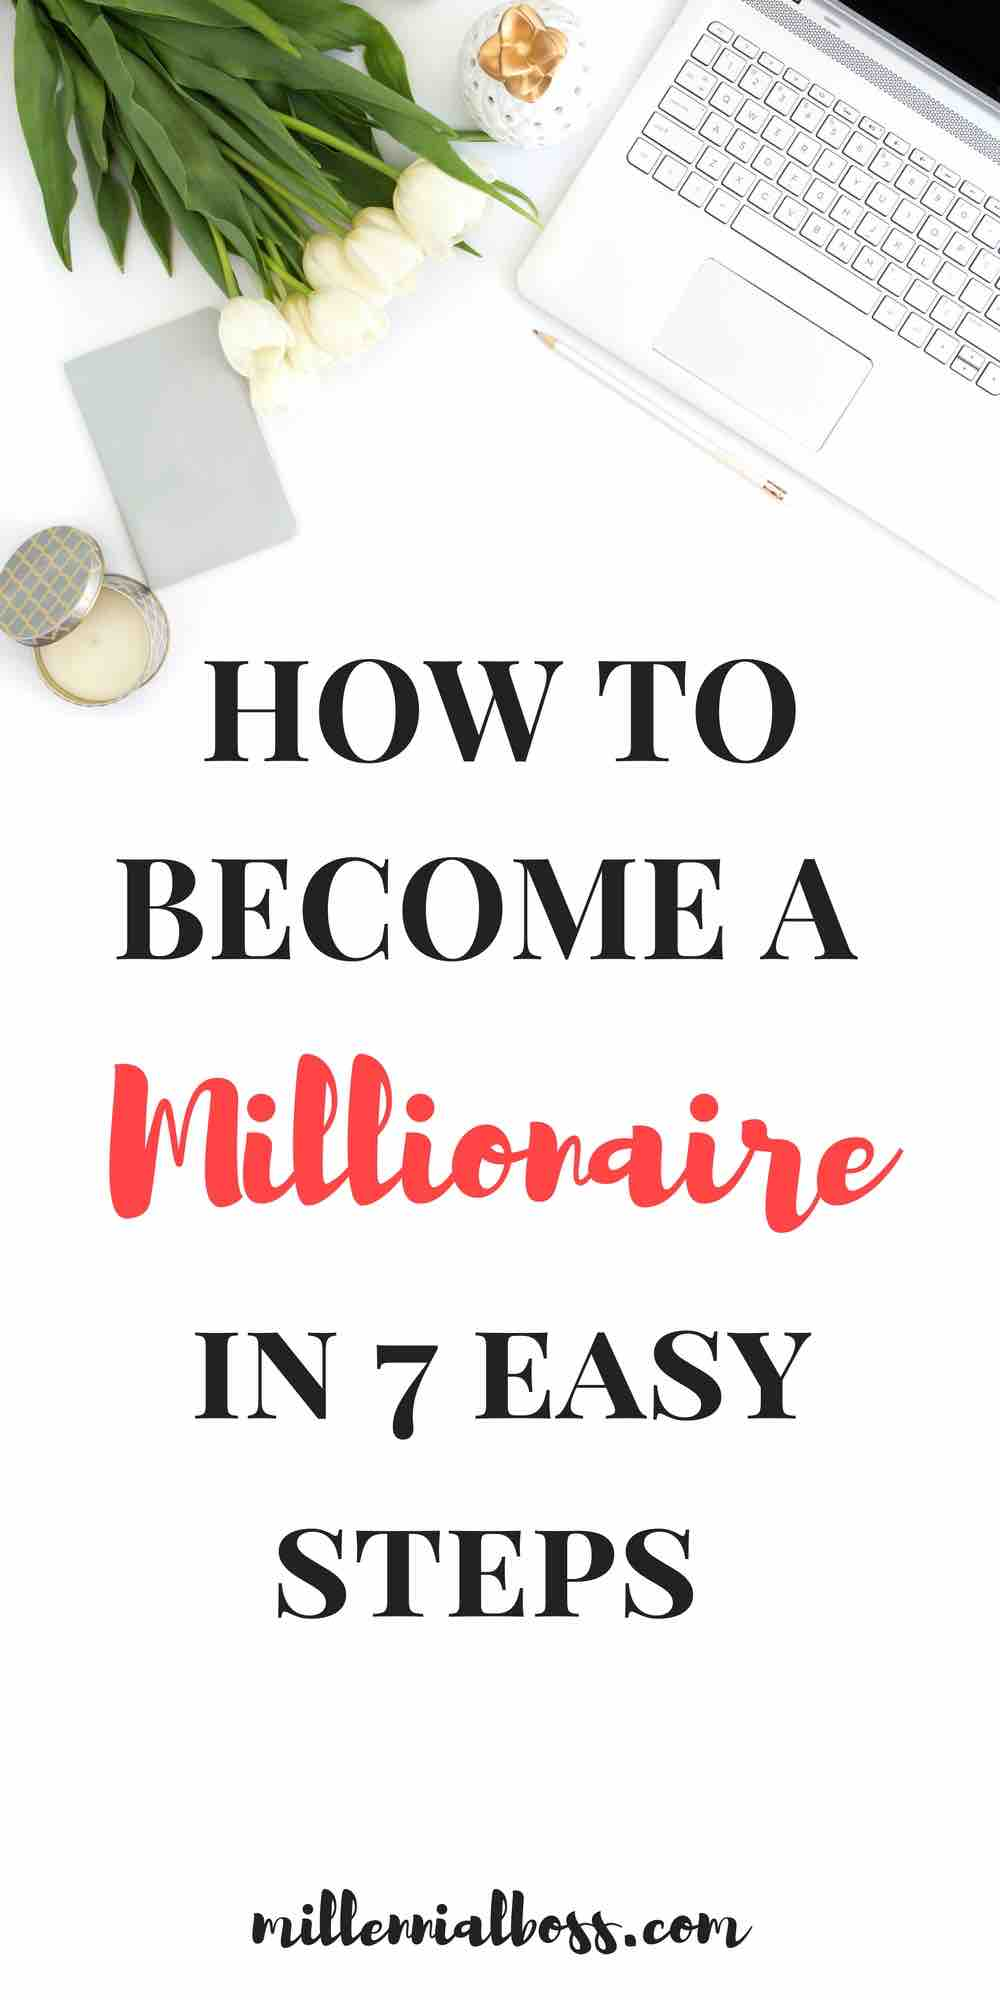 How to Be e a Millionaire the Boring Way 401 k IRA HSA